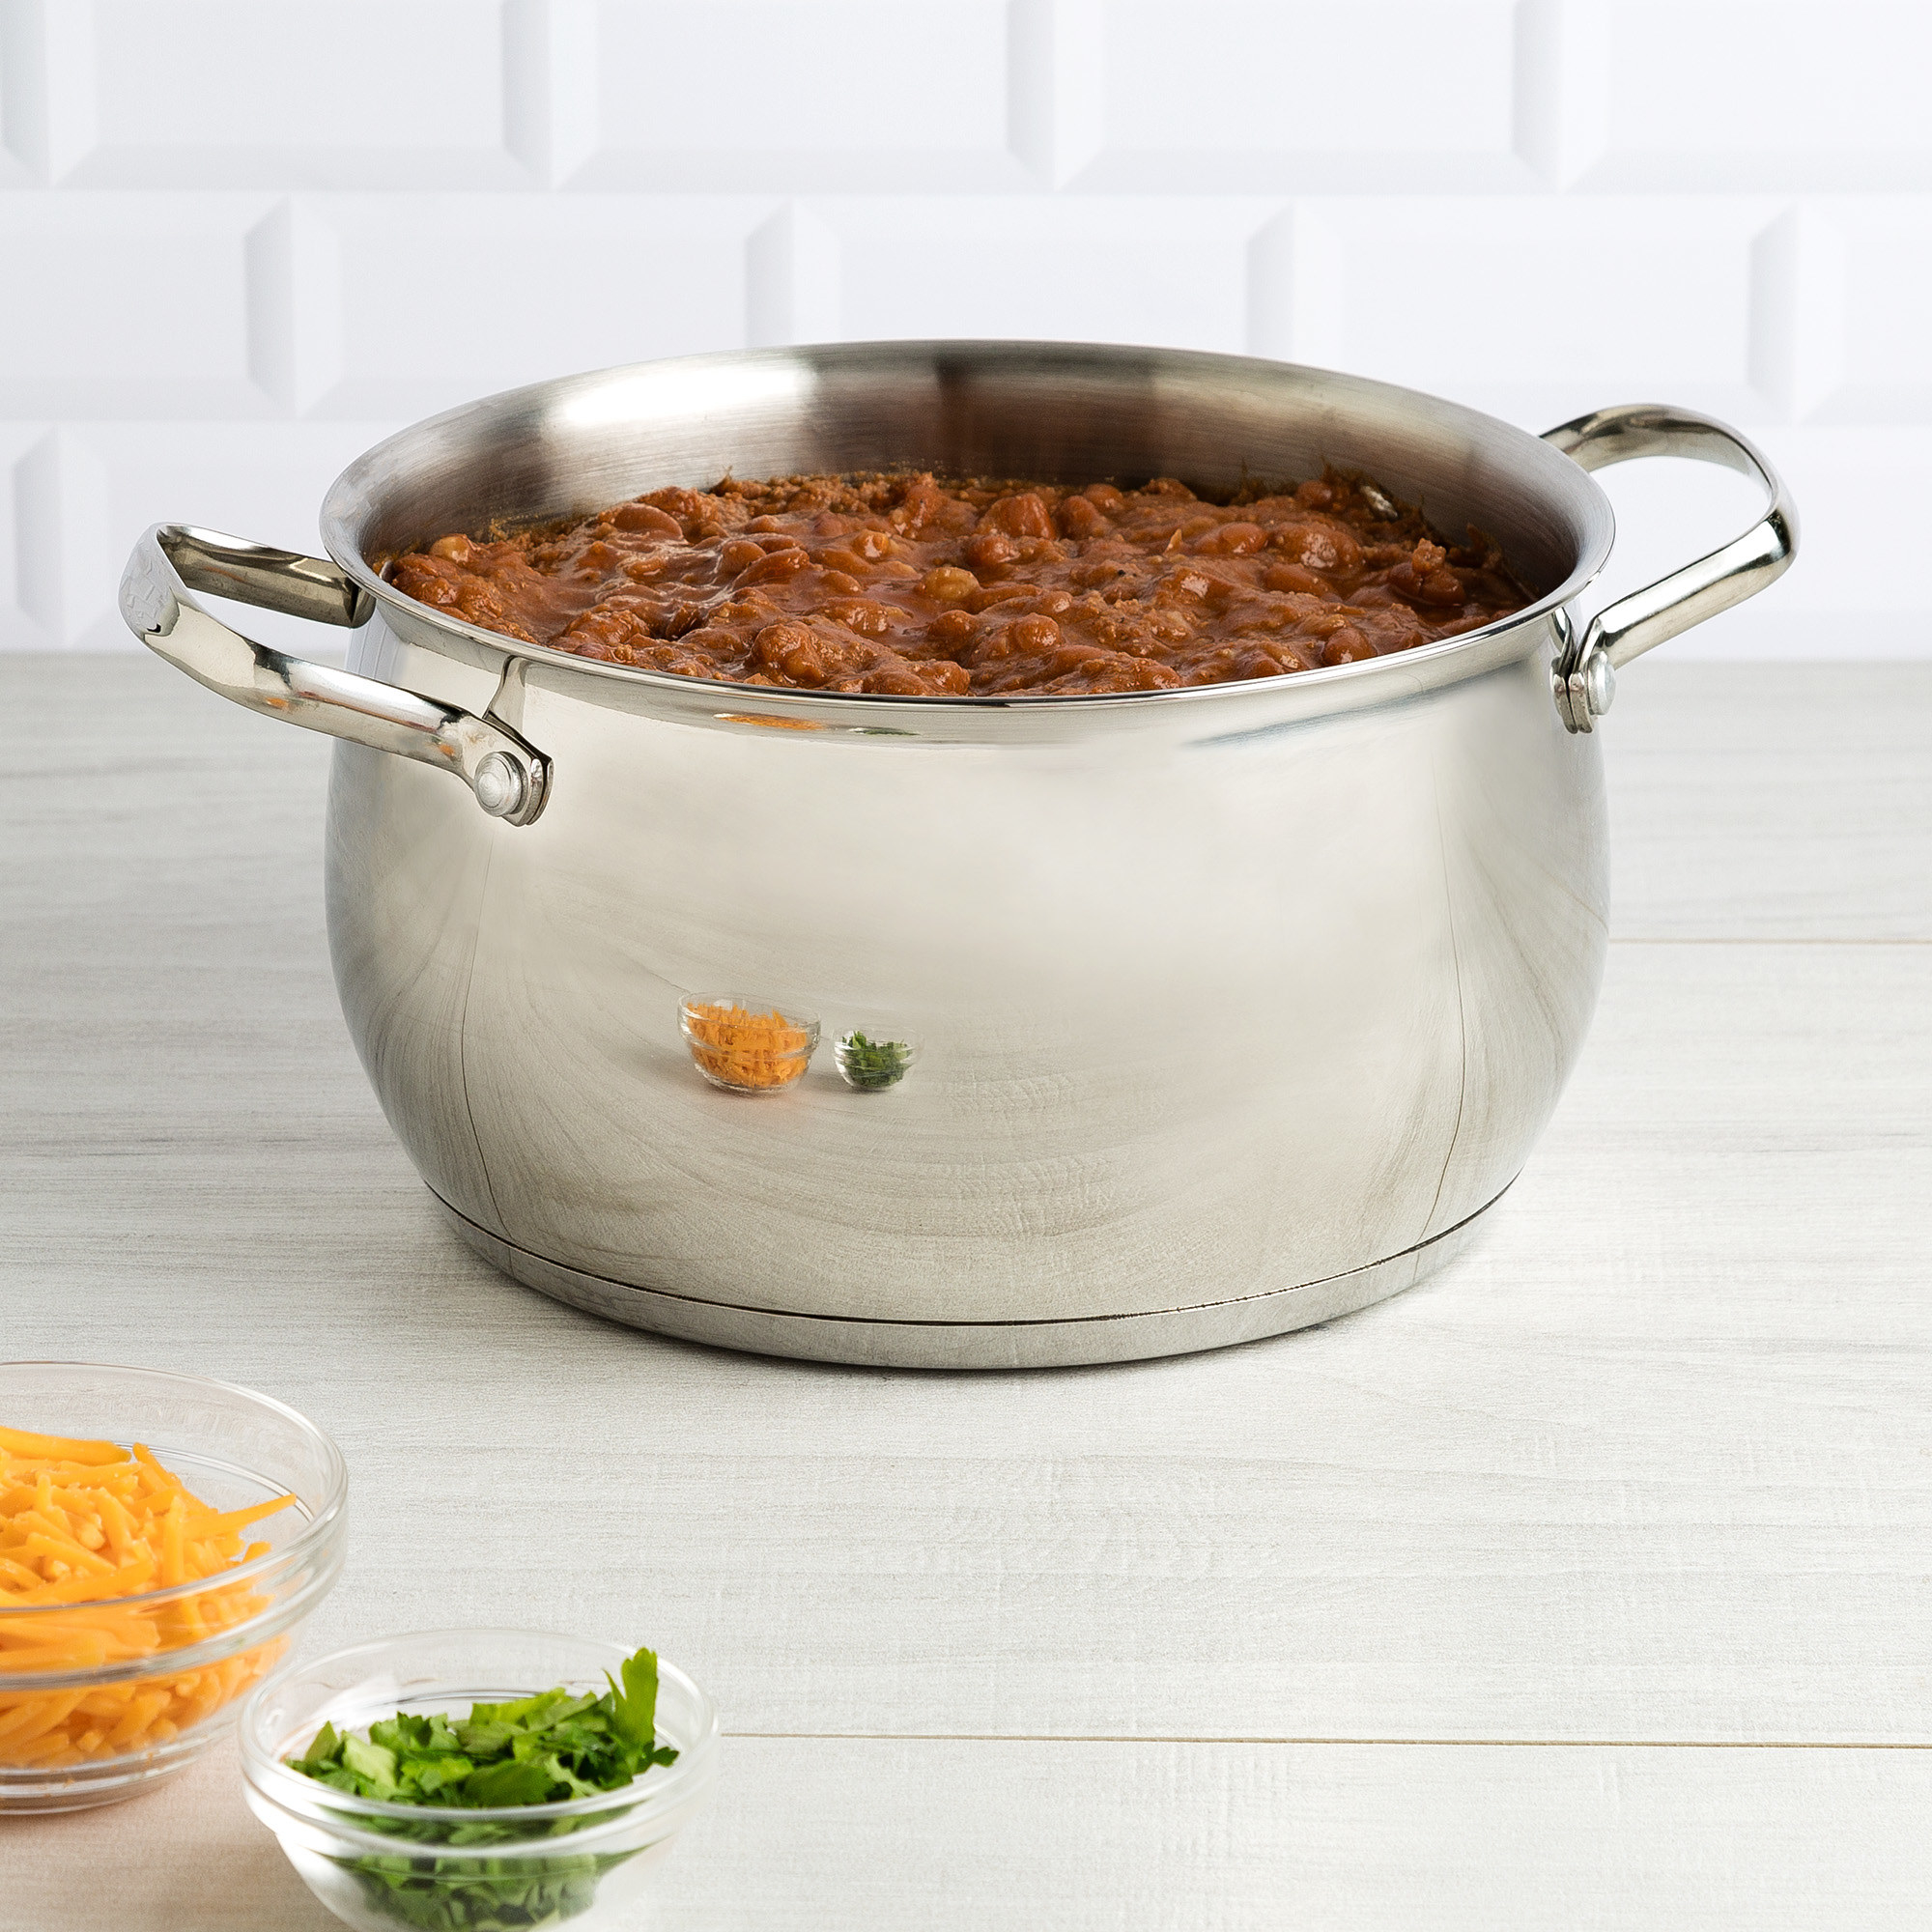 The silver colored Dutch oven, shown filled with beans